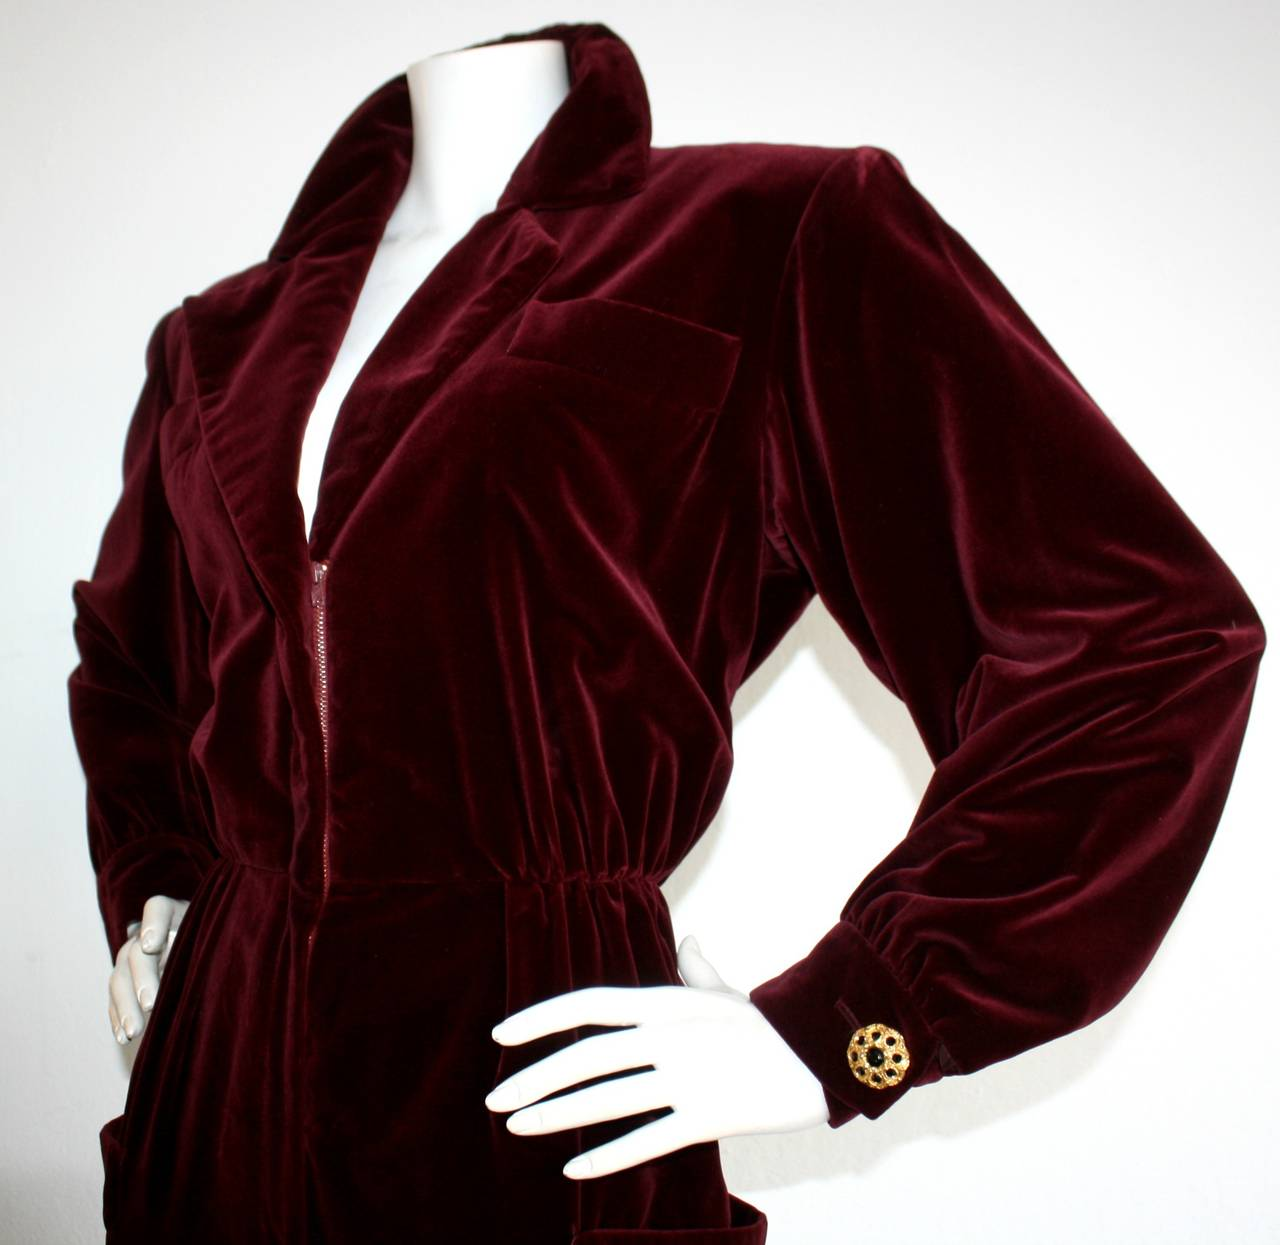 Important Vintage Yves Saint Laurent Le Smoking Burgundy Velvet Jumpsuit In Excellent Condition For Sale In San Francisco, CA